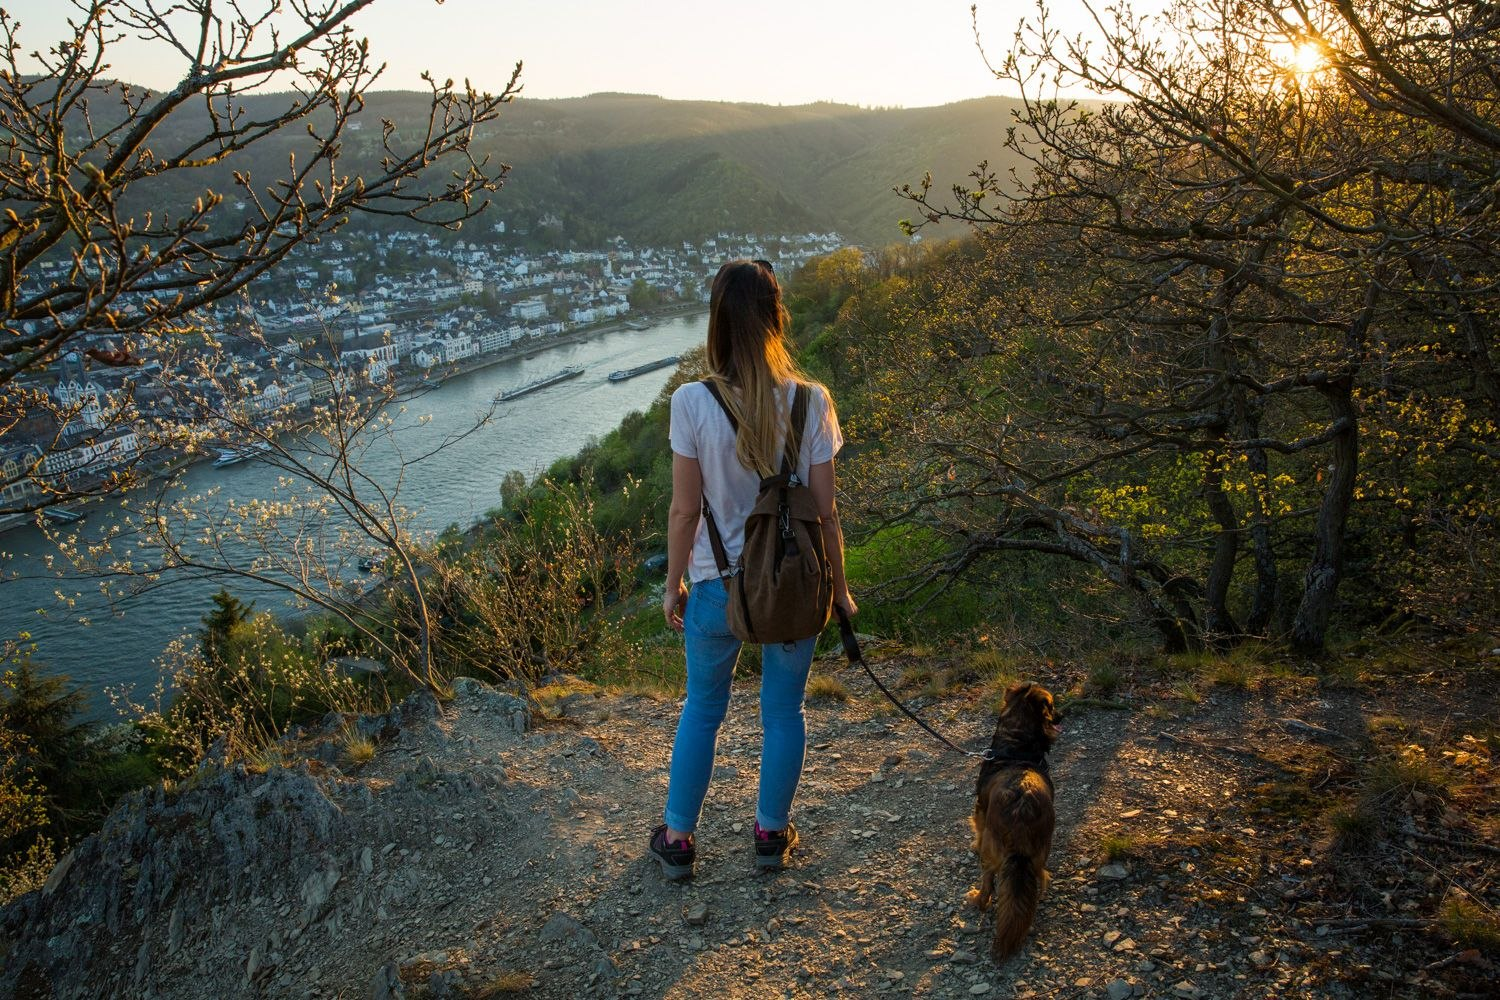 View from Filsener Ley to Boppard | © Henry Tornow